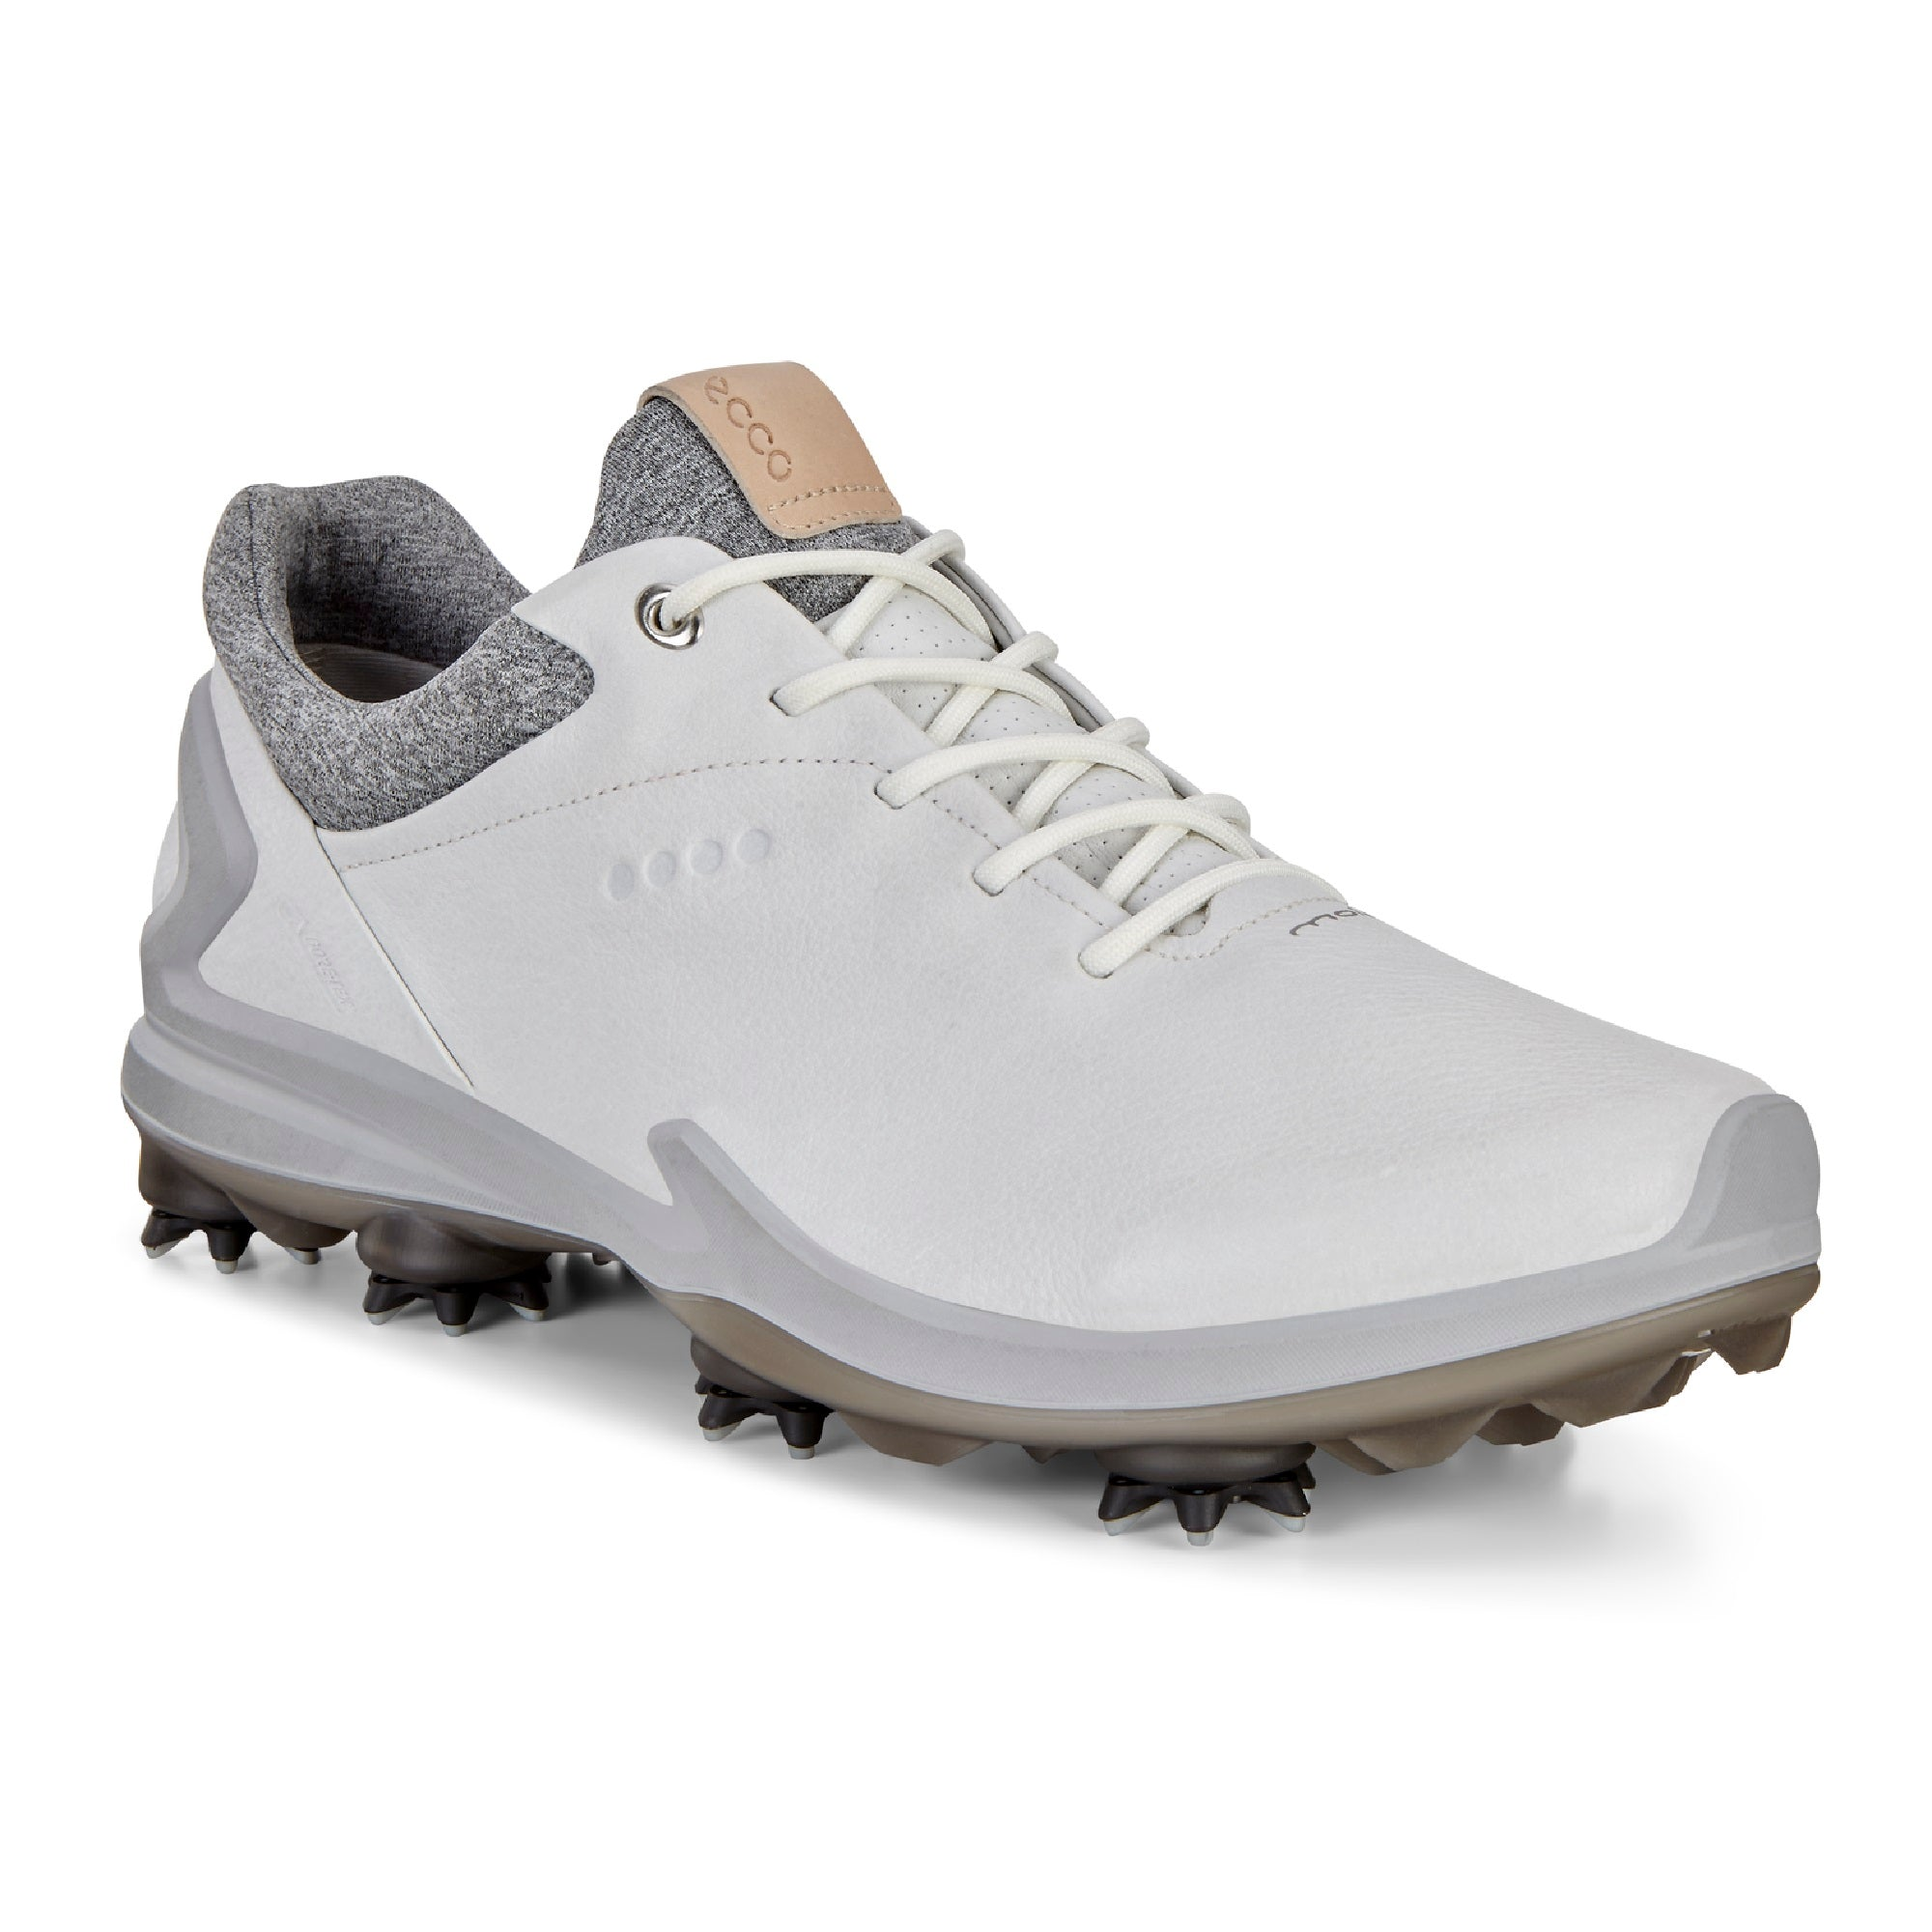 Ecco Biom G3 Gore-Tex Golf Shoe 131804